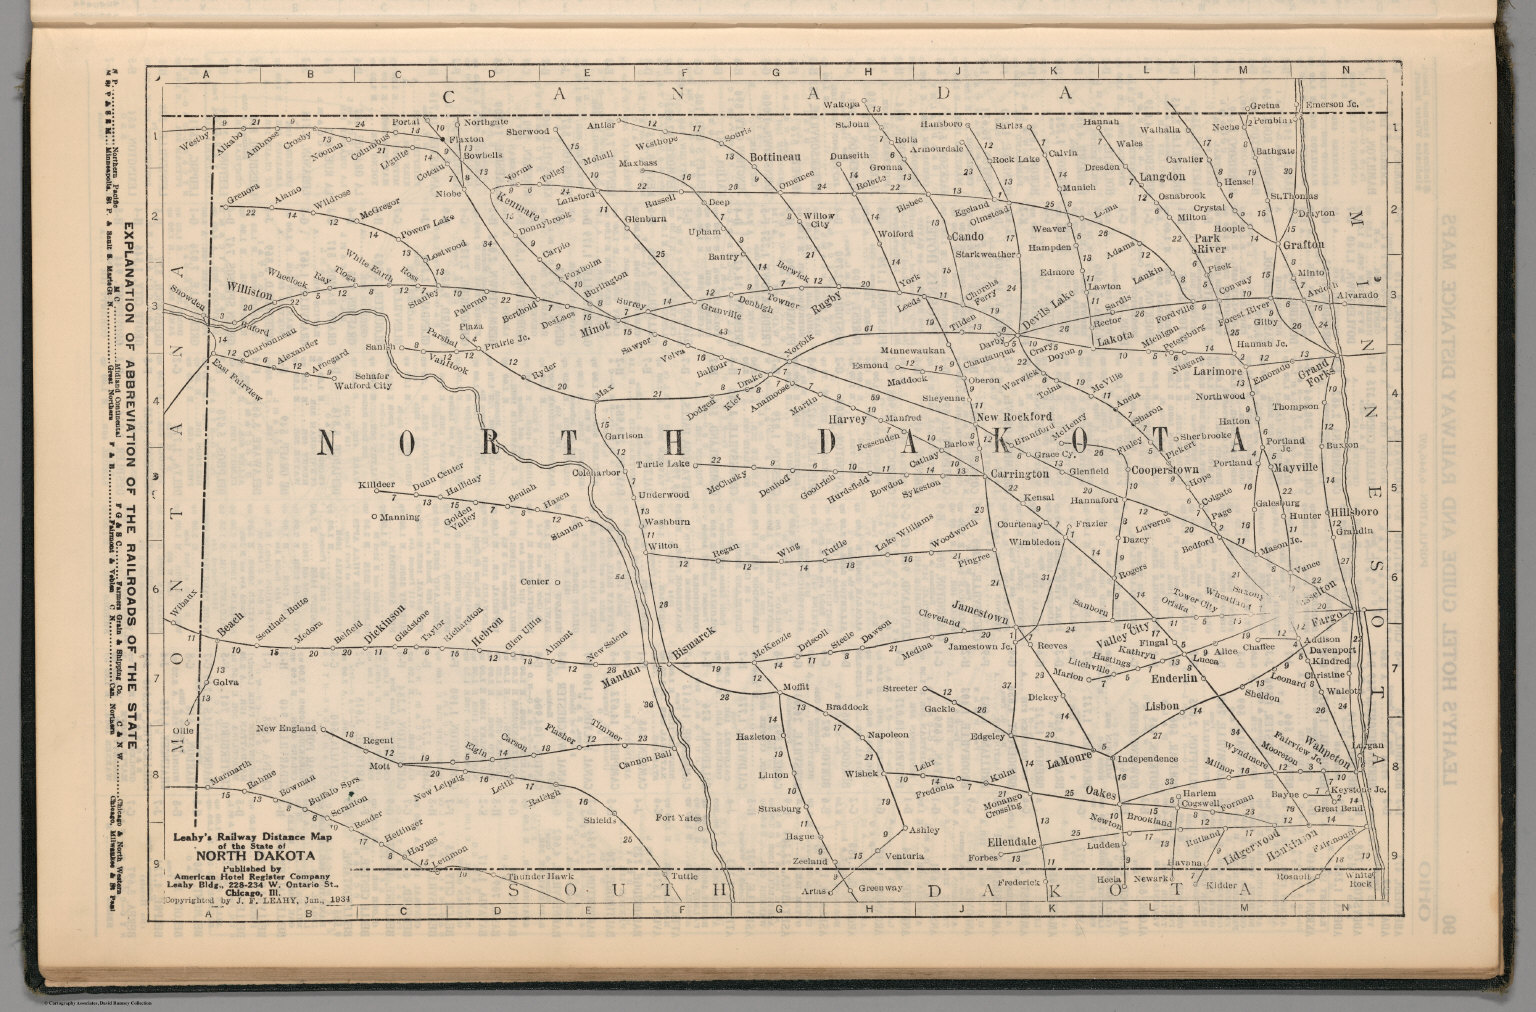 Fargo History Project Leahys Hotel Guide and Railway Distance Map